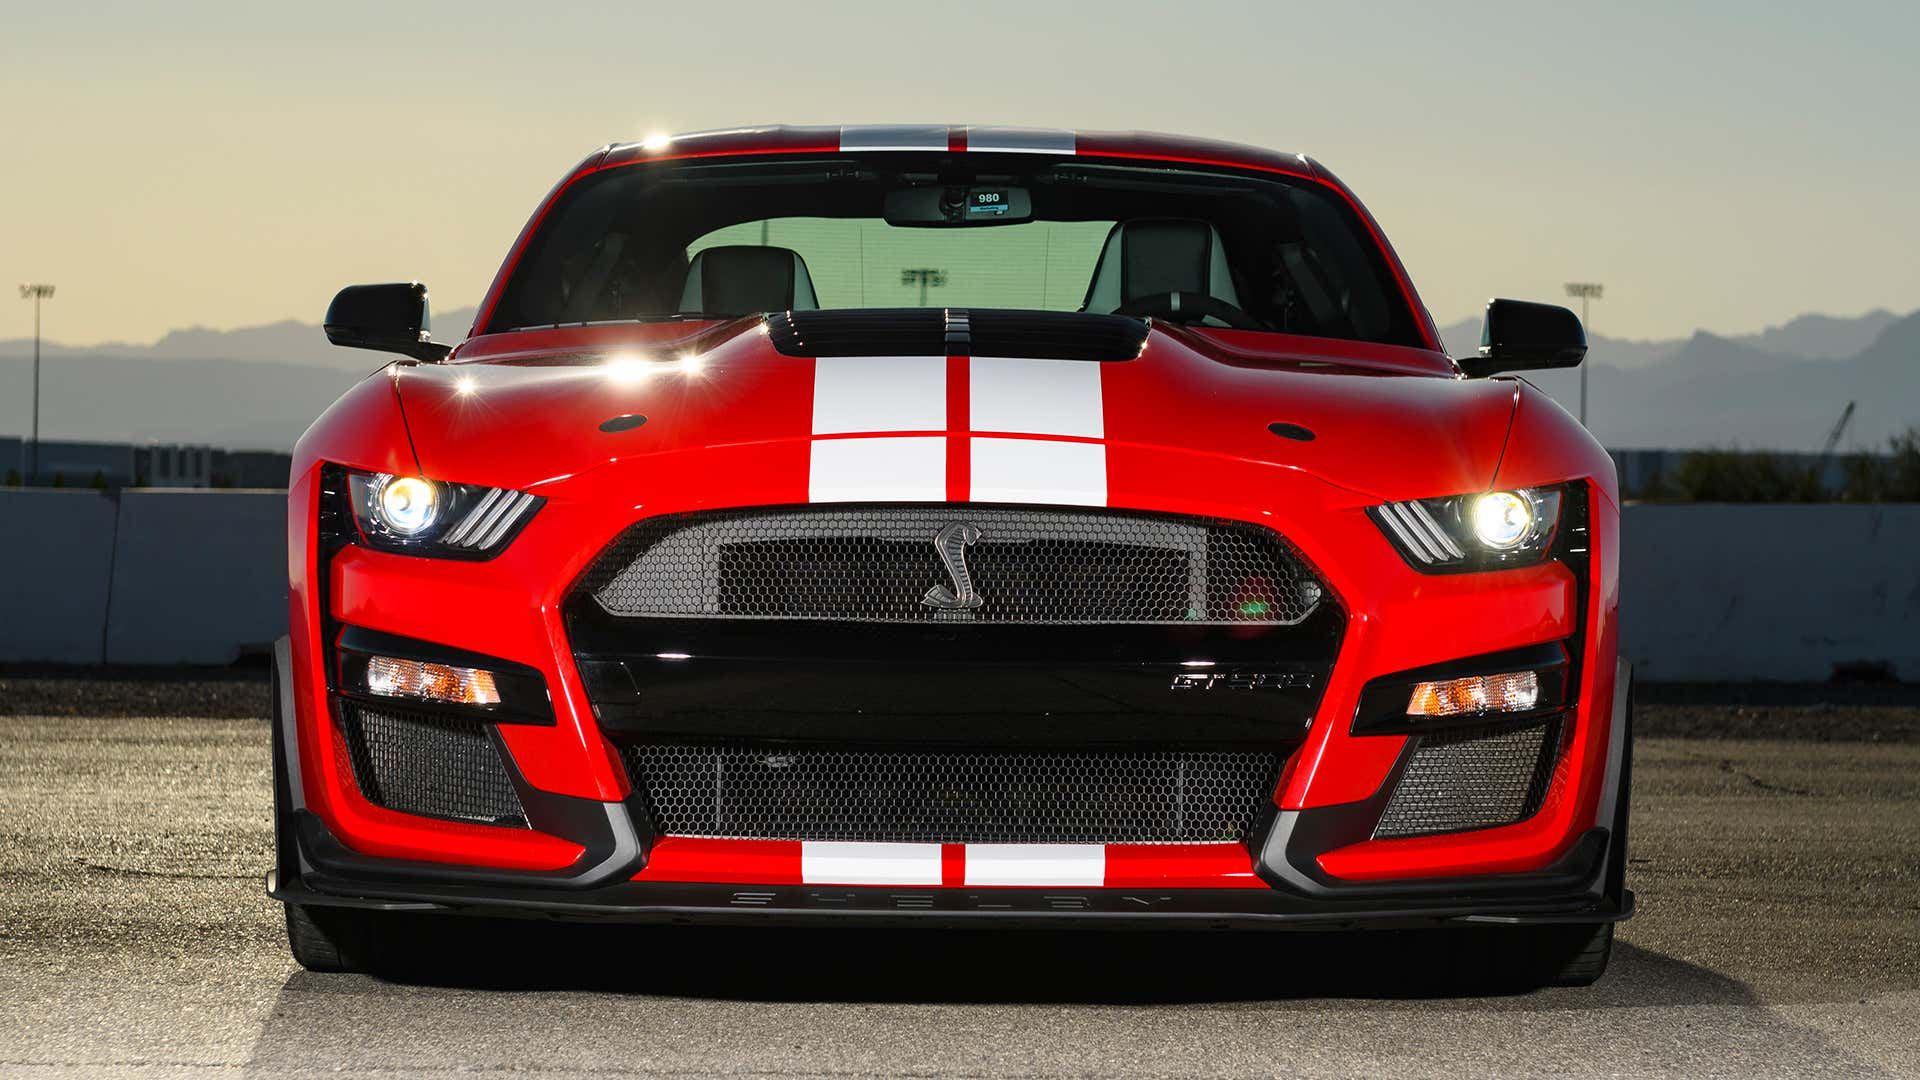 A red Ford Mustang Shelby GT500 faces the camera.